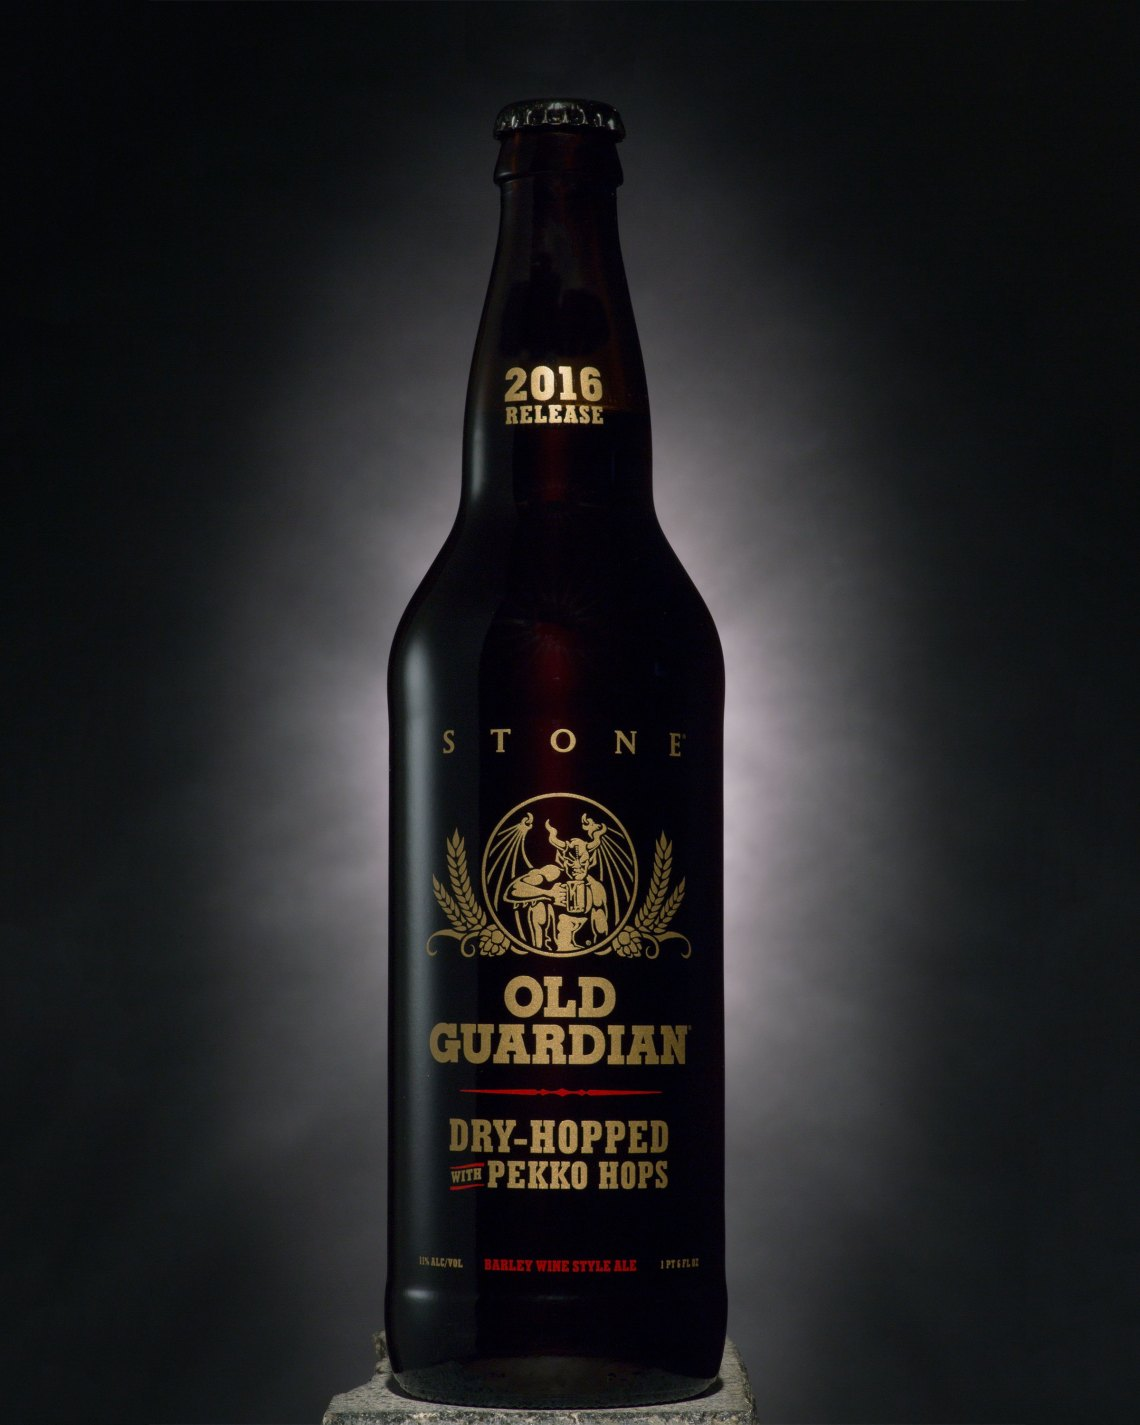 Stone Old Guardian Barley Wine Dry-Hopped with Pekko Hops 2016